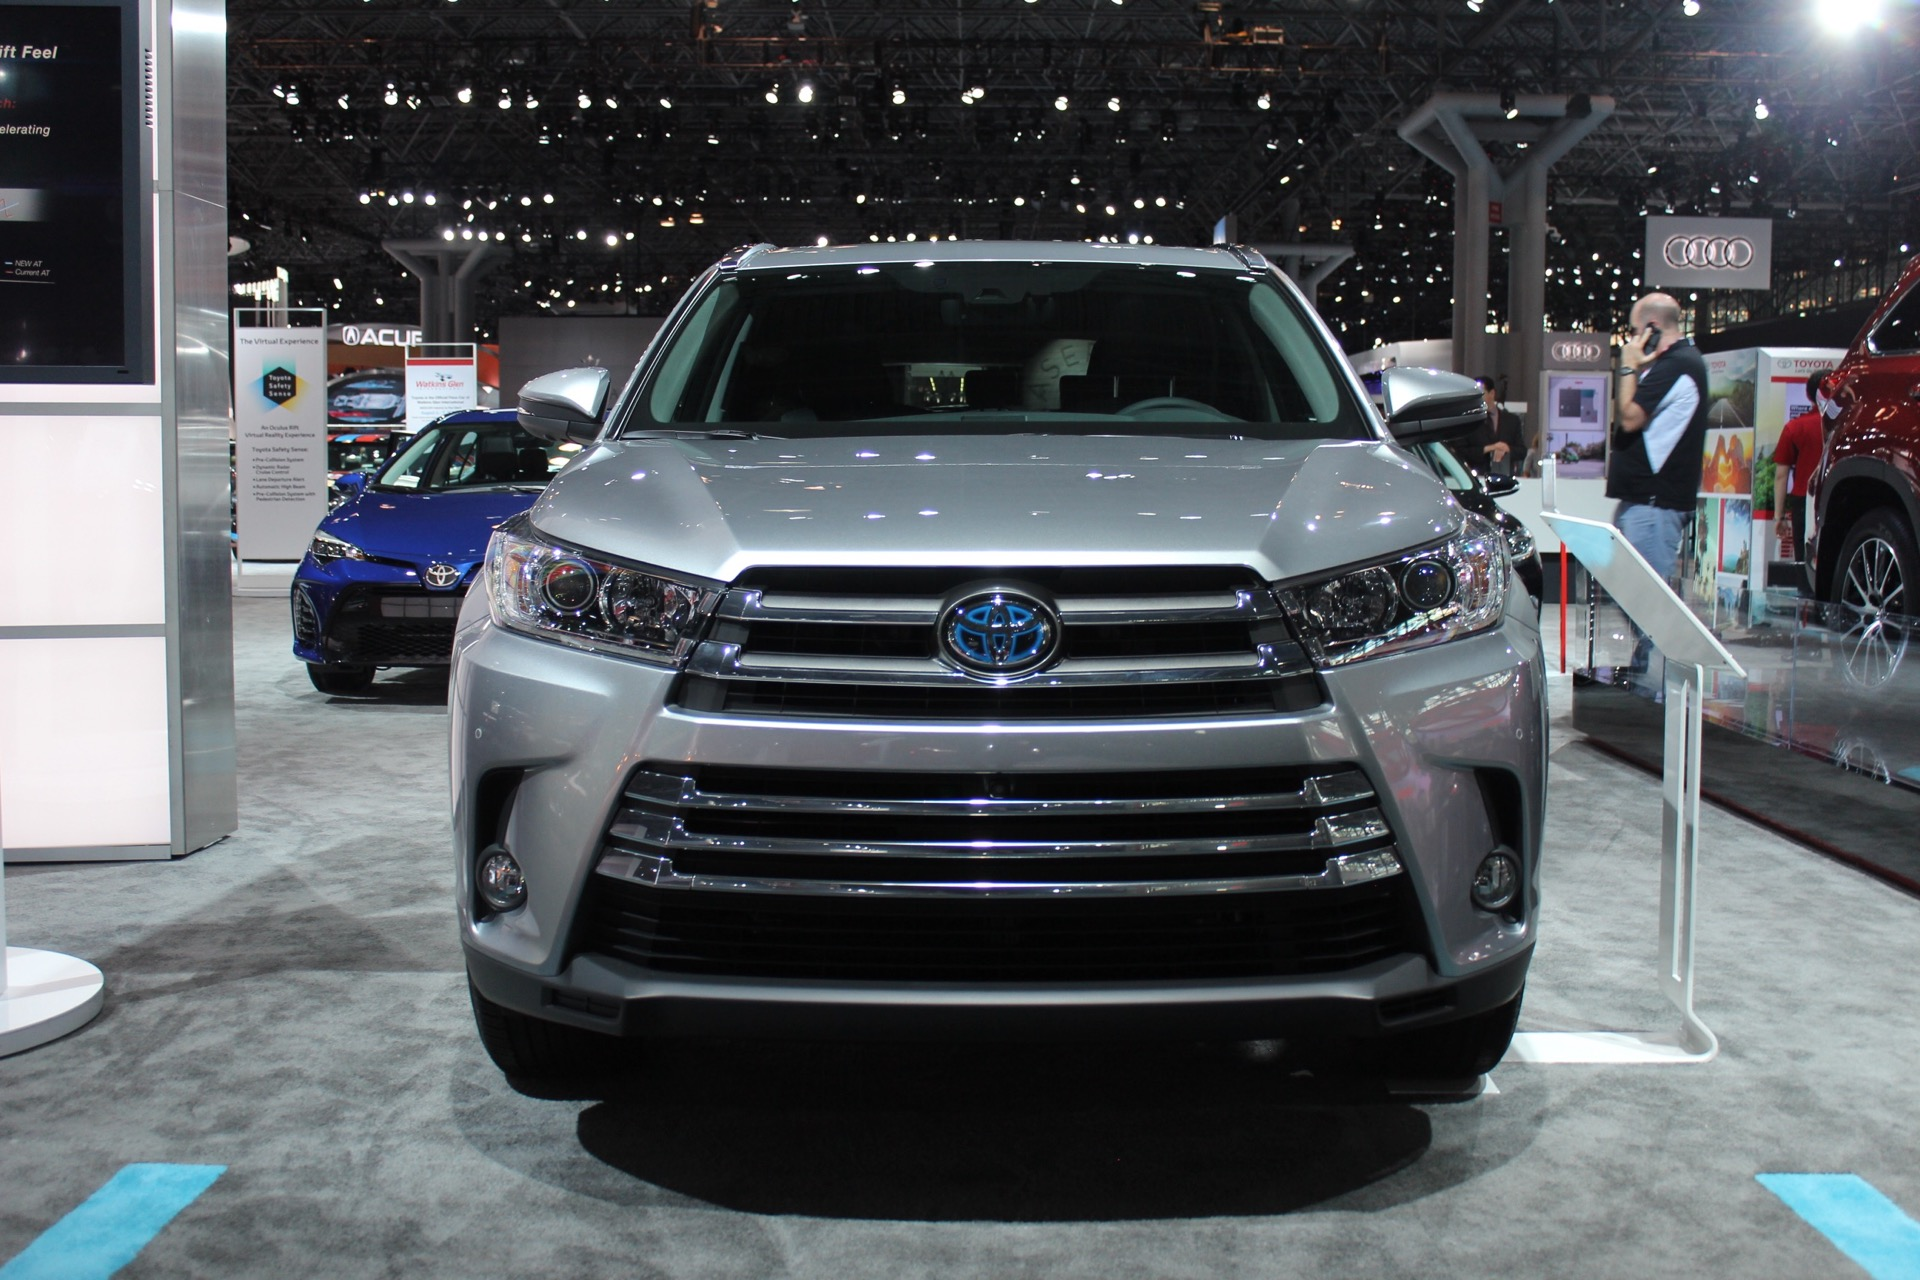 Toyota Highlander 2017 | Release Date, Price And Specs